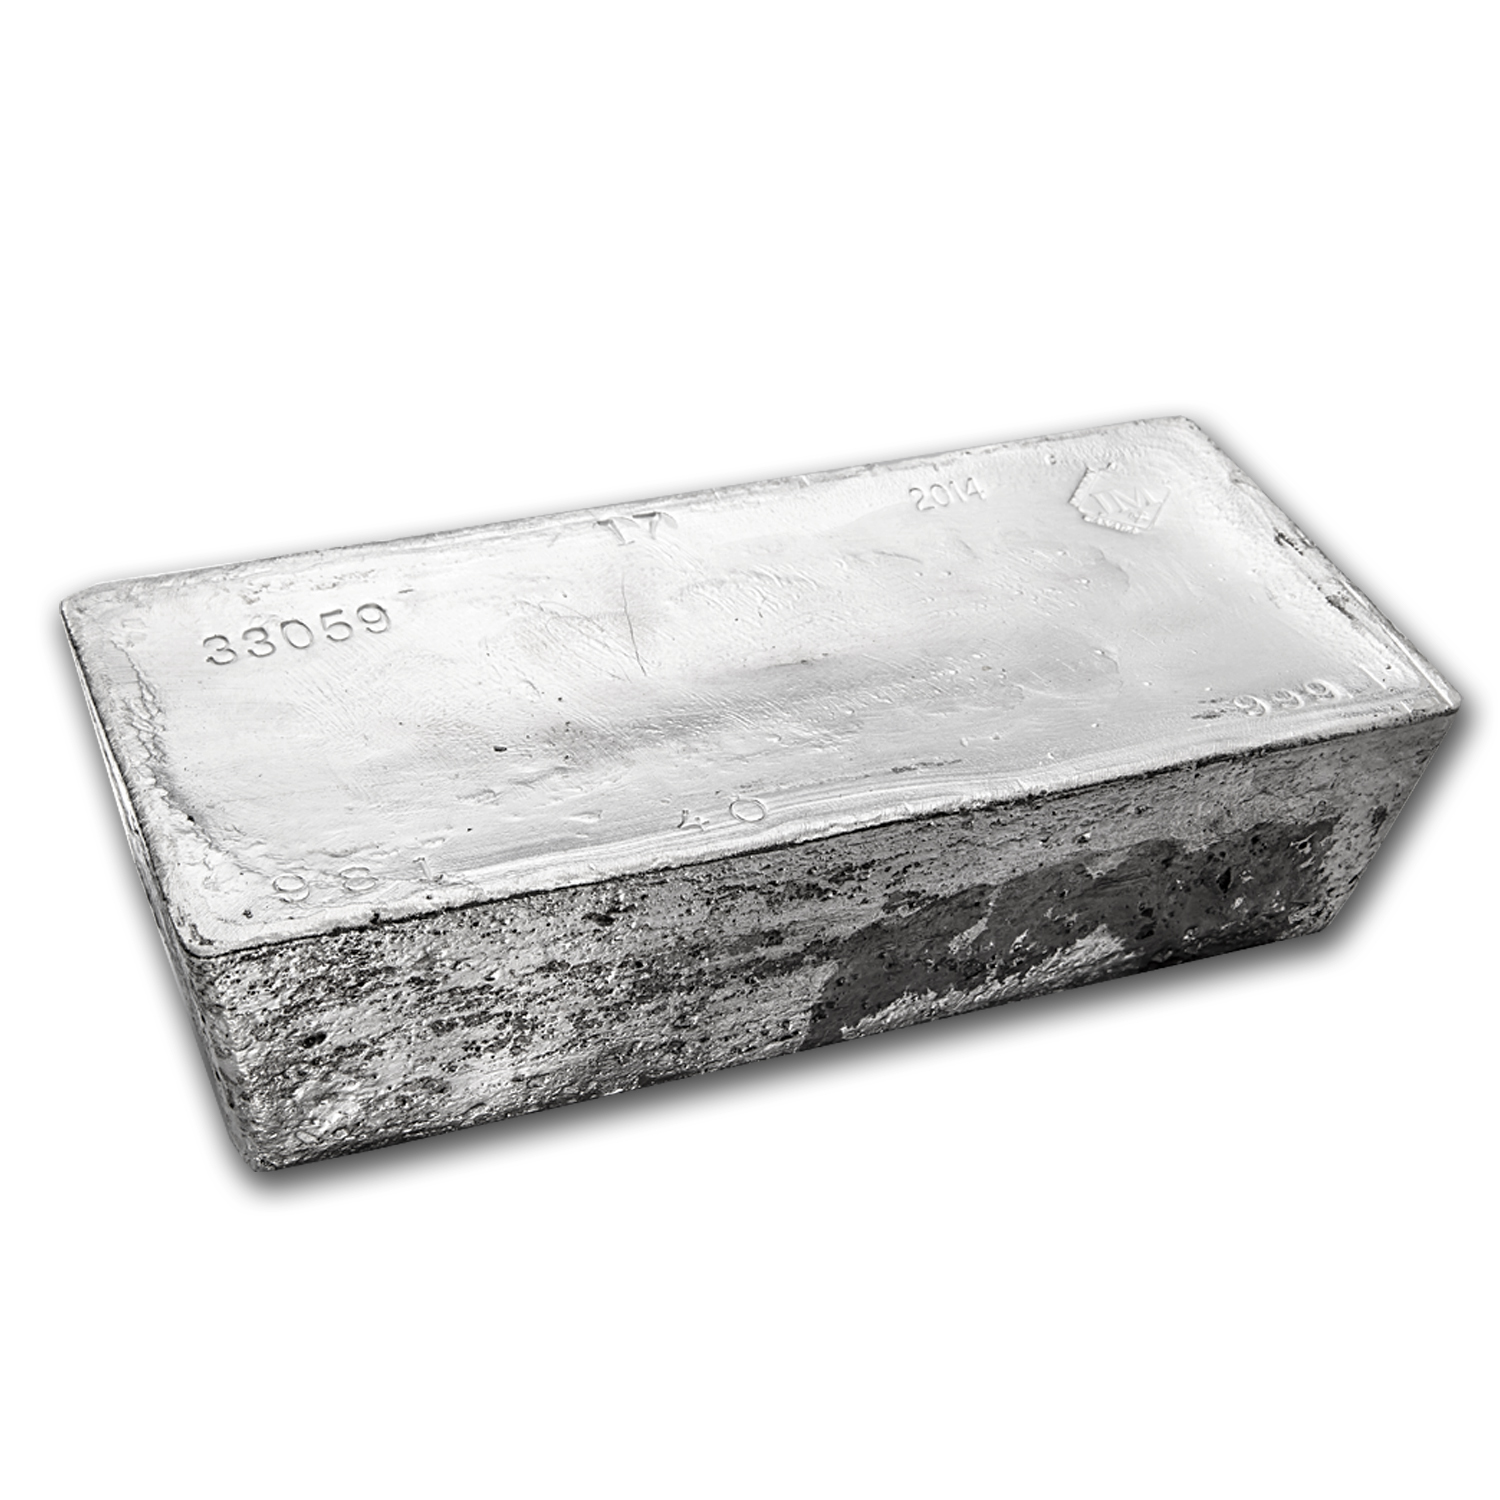 983.20 oz Silver Bars - Johnson Matthey